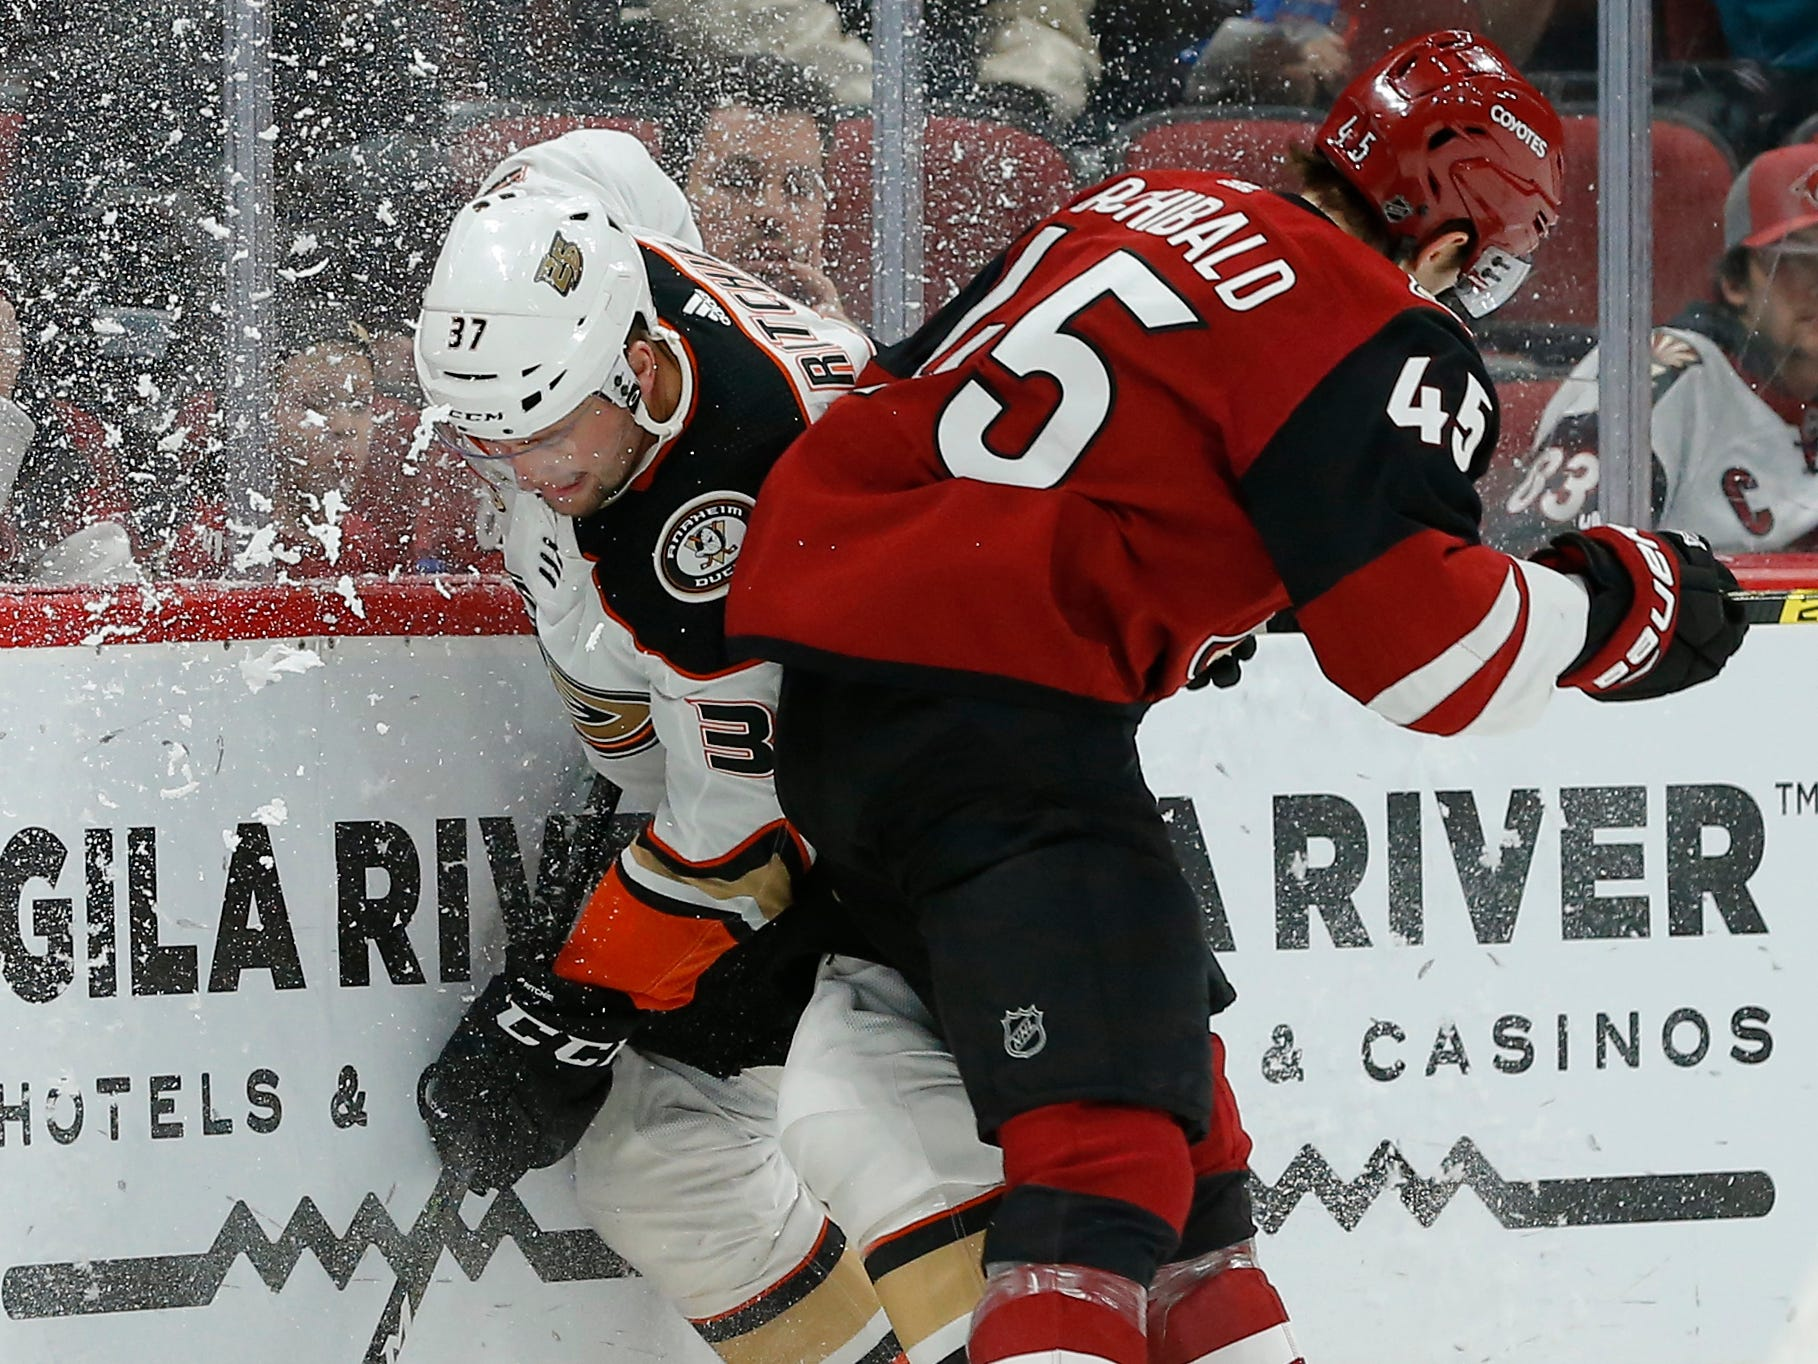 Arizona Coyotes right wing Josh Archibald (45) in the second period during an NHL hockey game against the Anaheim Ducks, Thursday, March 14, 2019, in Glendale, Ariz.